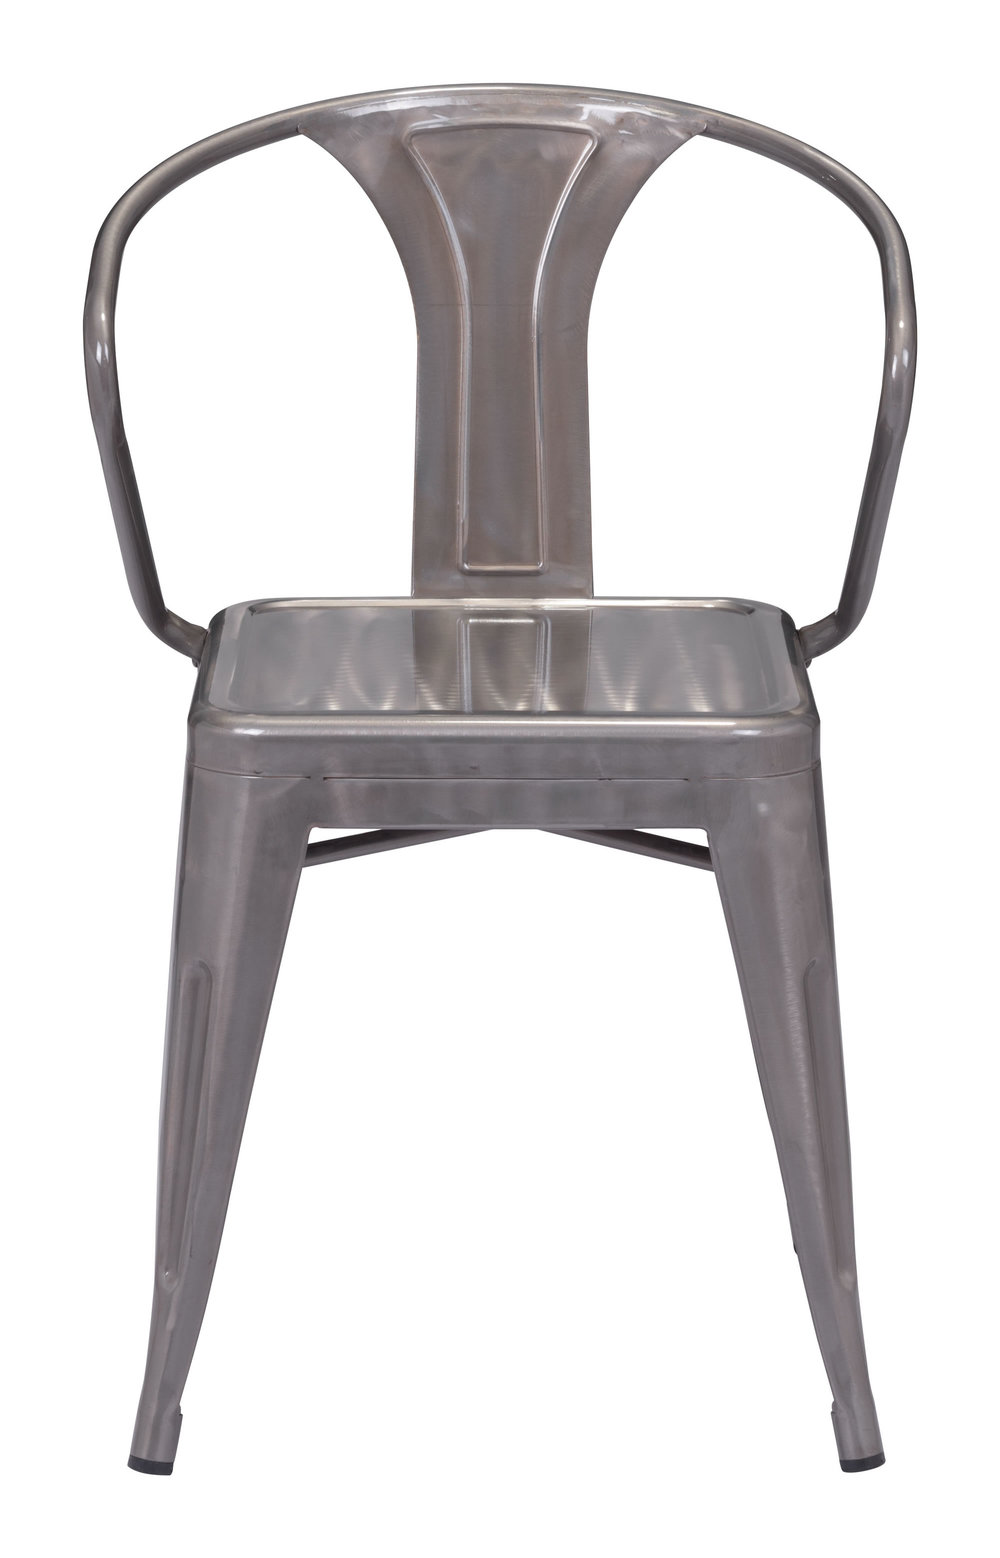 Zuo Modern Contemporary - Helix Dining Chair - Set of 2 - Gunmetal